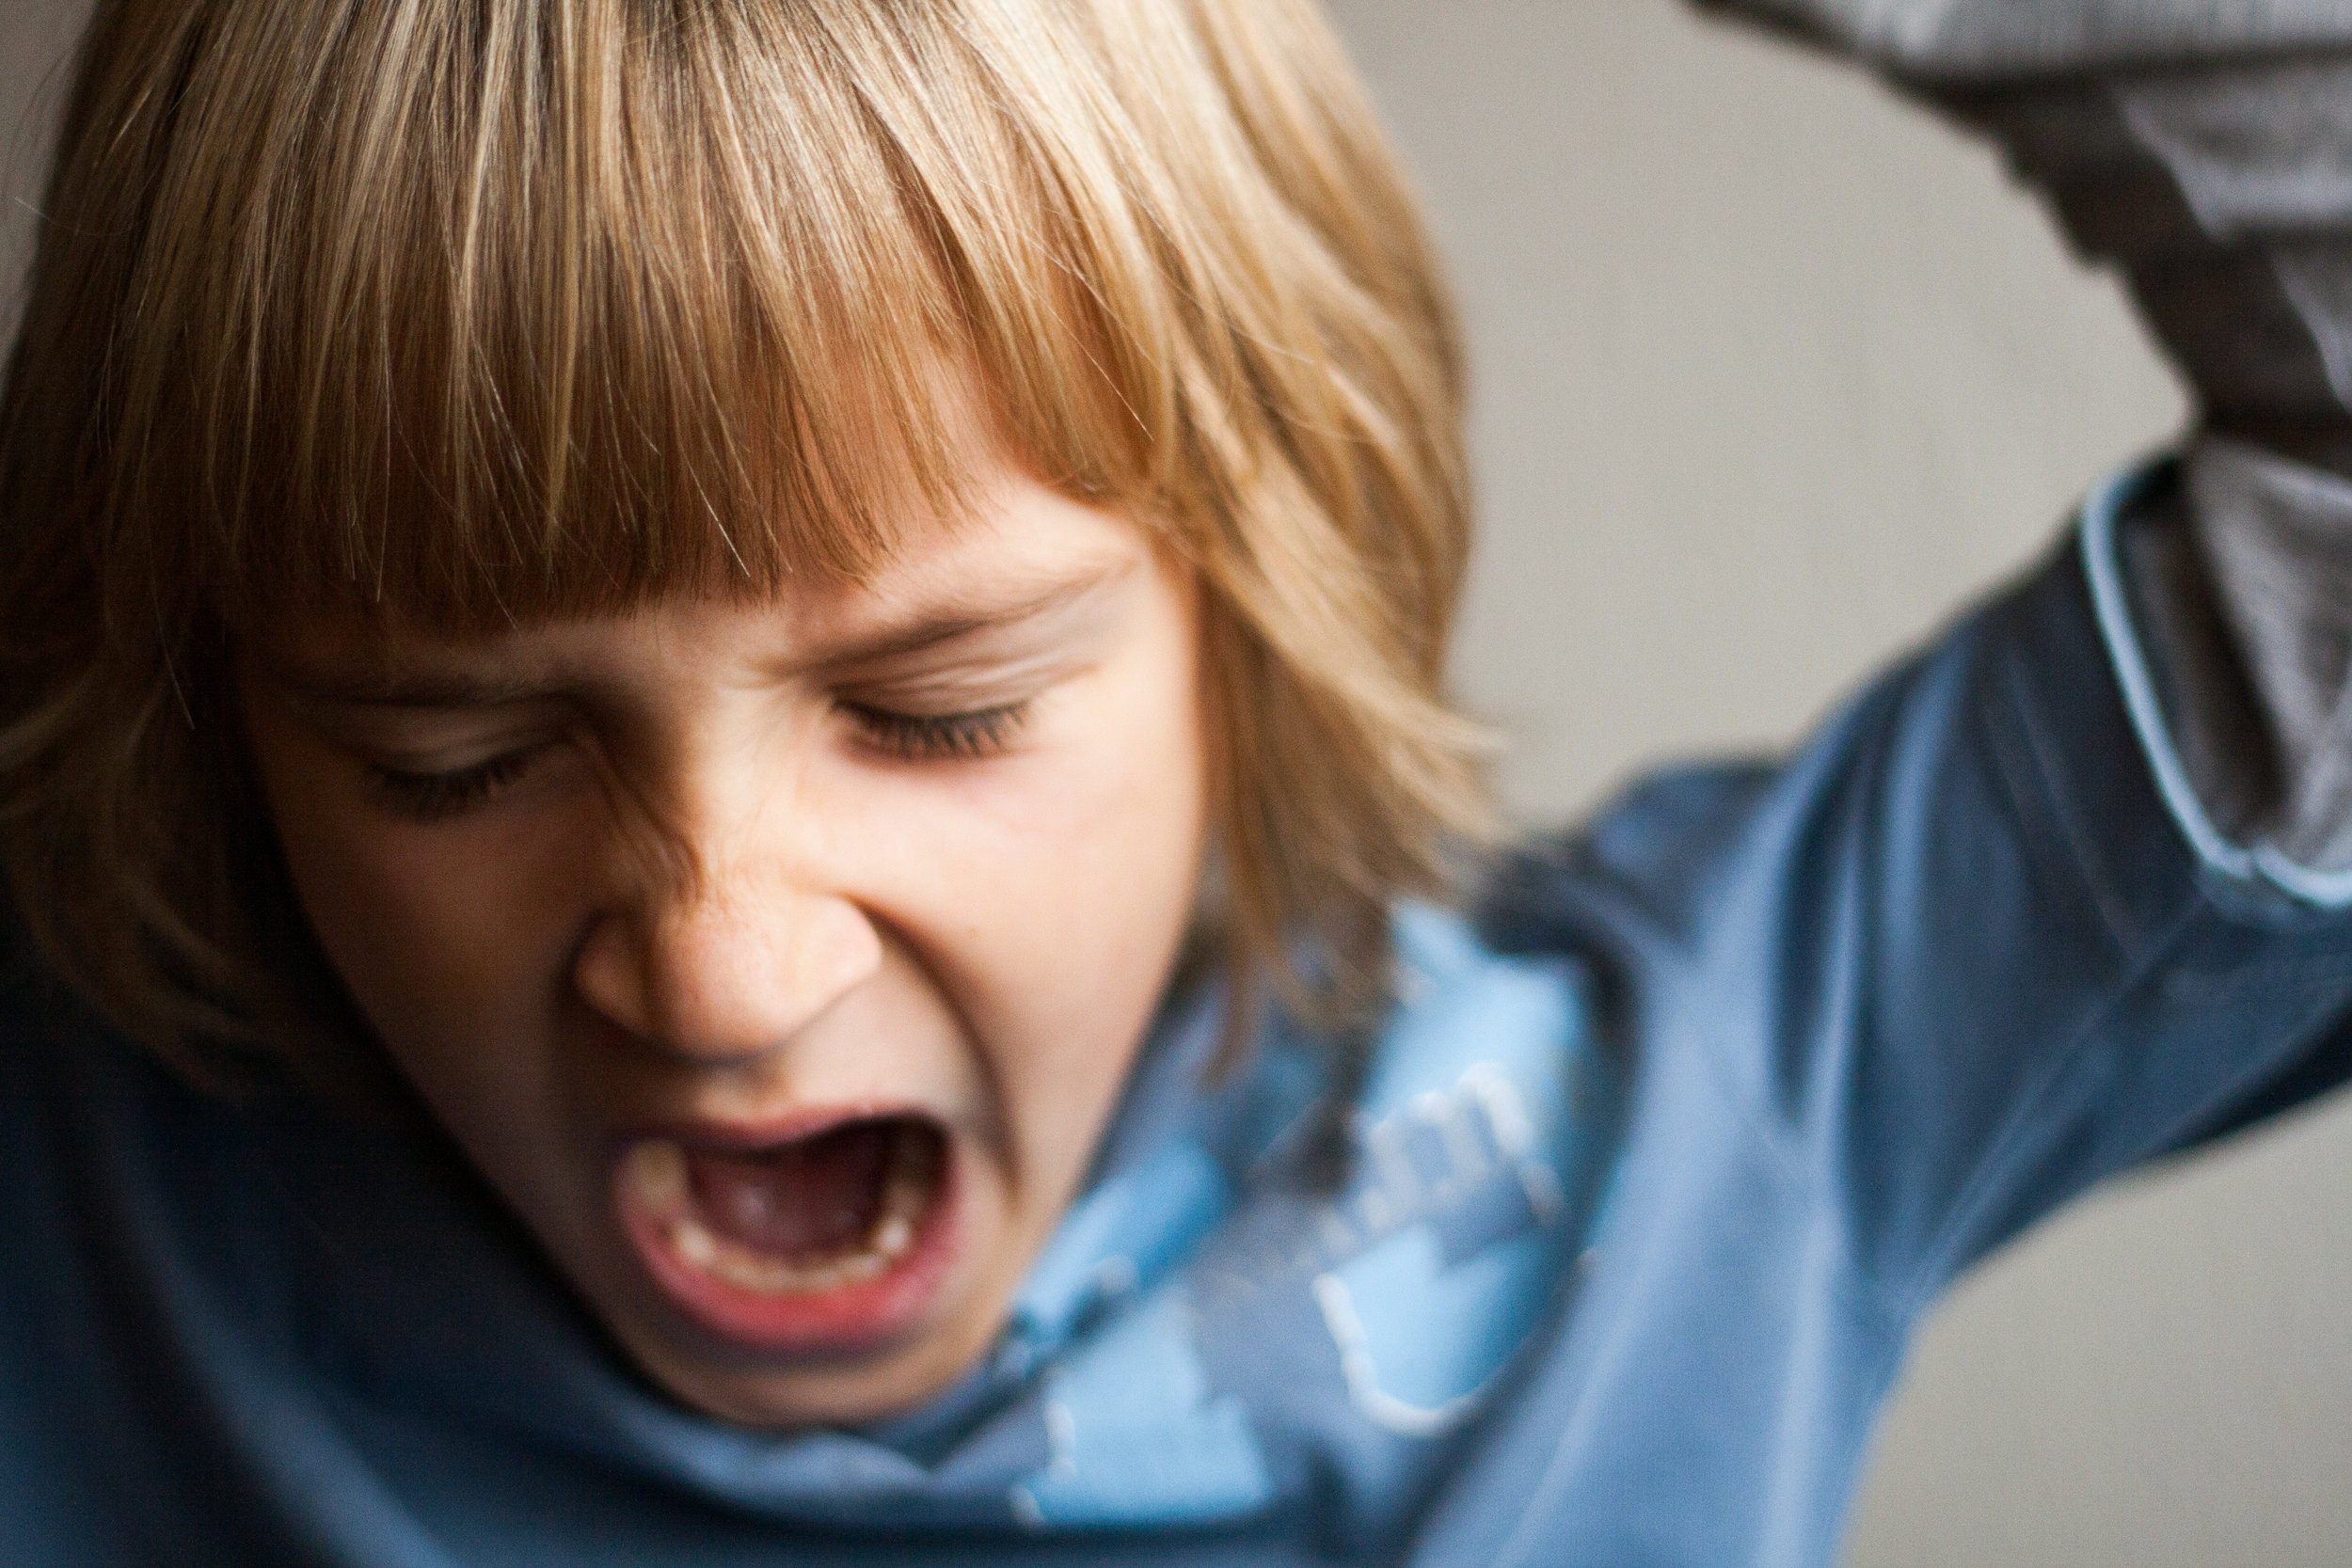 child out of control - parenting tips for discipline